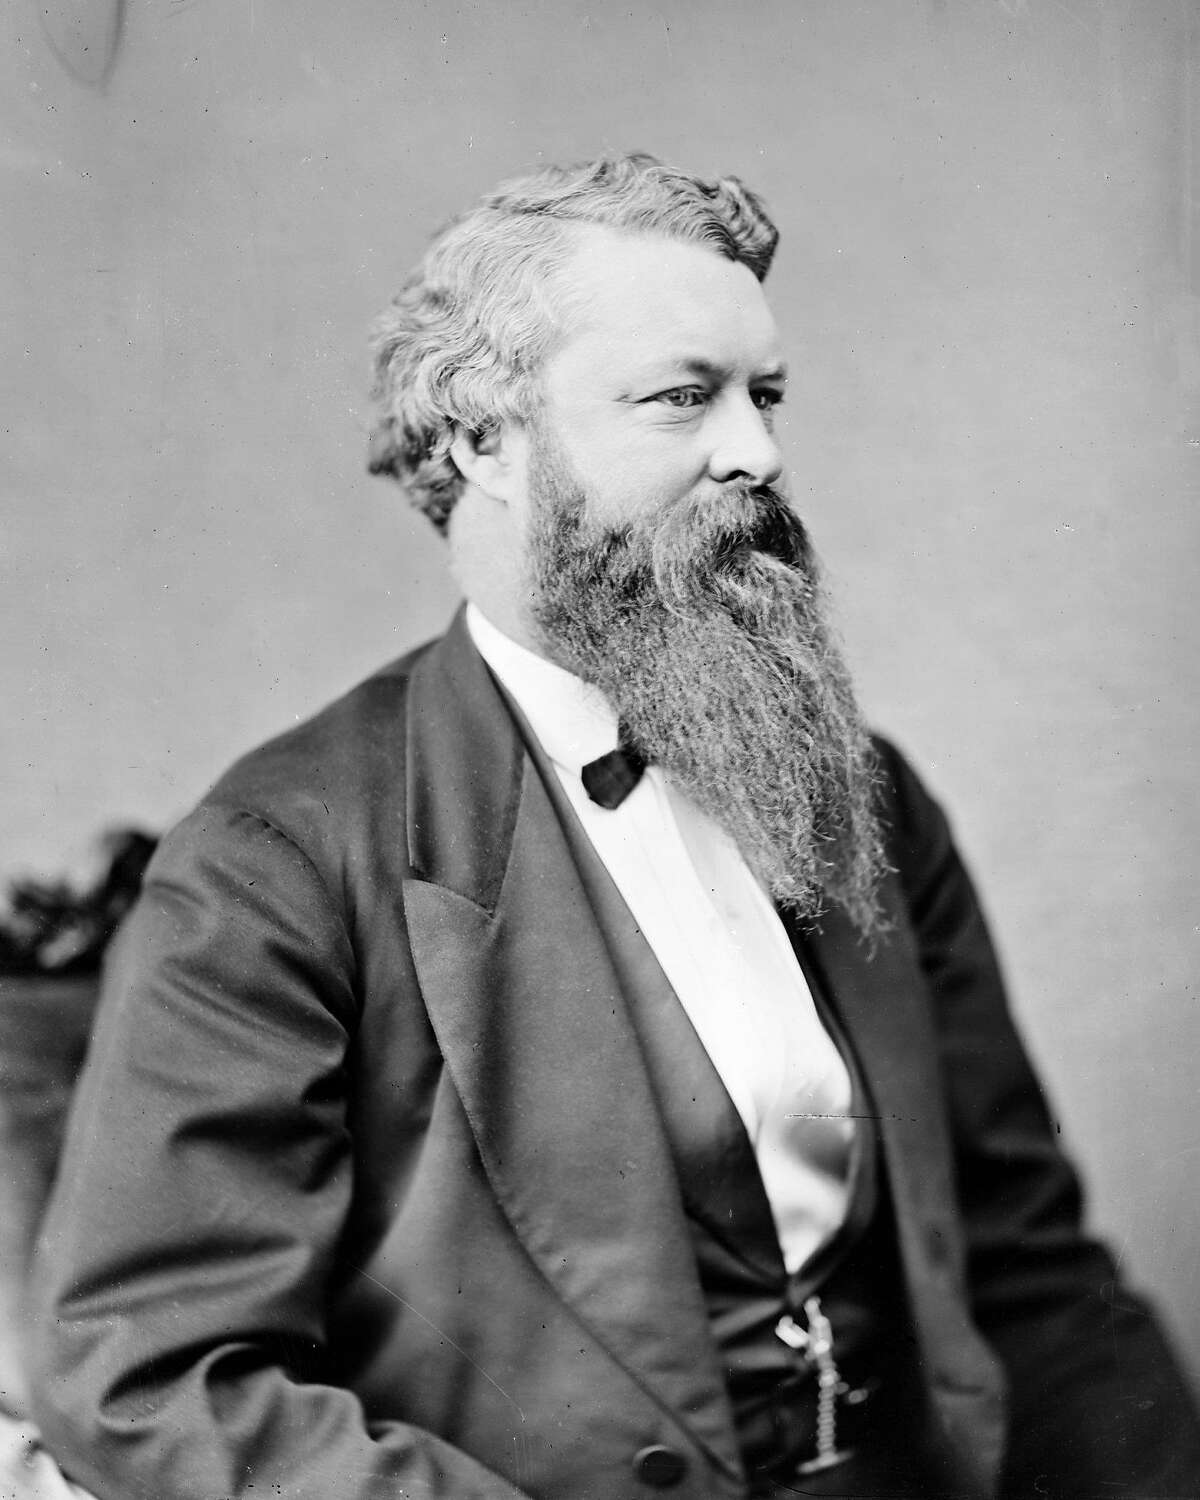 When Secretary of War William Belknap learned that he was about to be impeached, he rushed to President Ulysses S. Grant's office and resigned. But the House impeached him anyway, and the Senate voted that he could be brought to trial despite his resignation. How will the apply to President Trump, who didn't resign but will be out of office when the Senate considers his case.